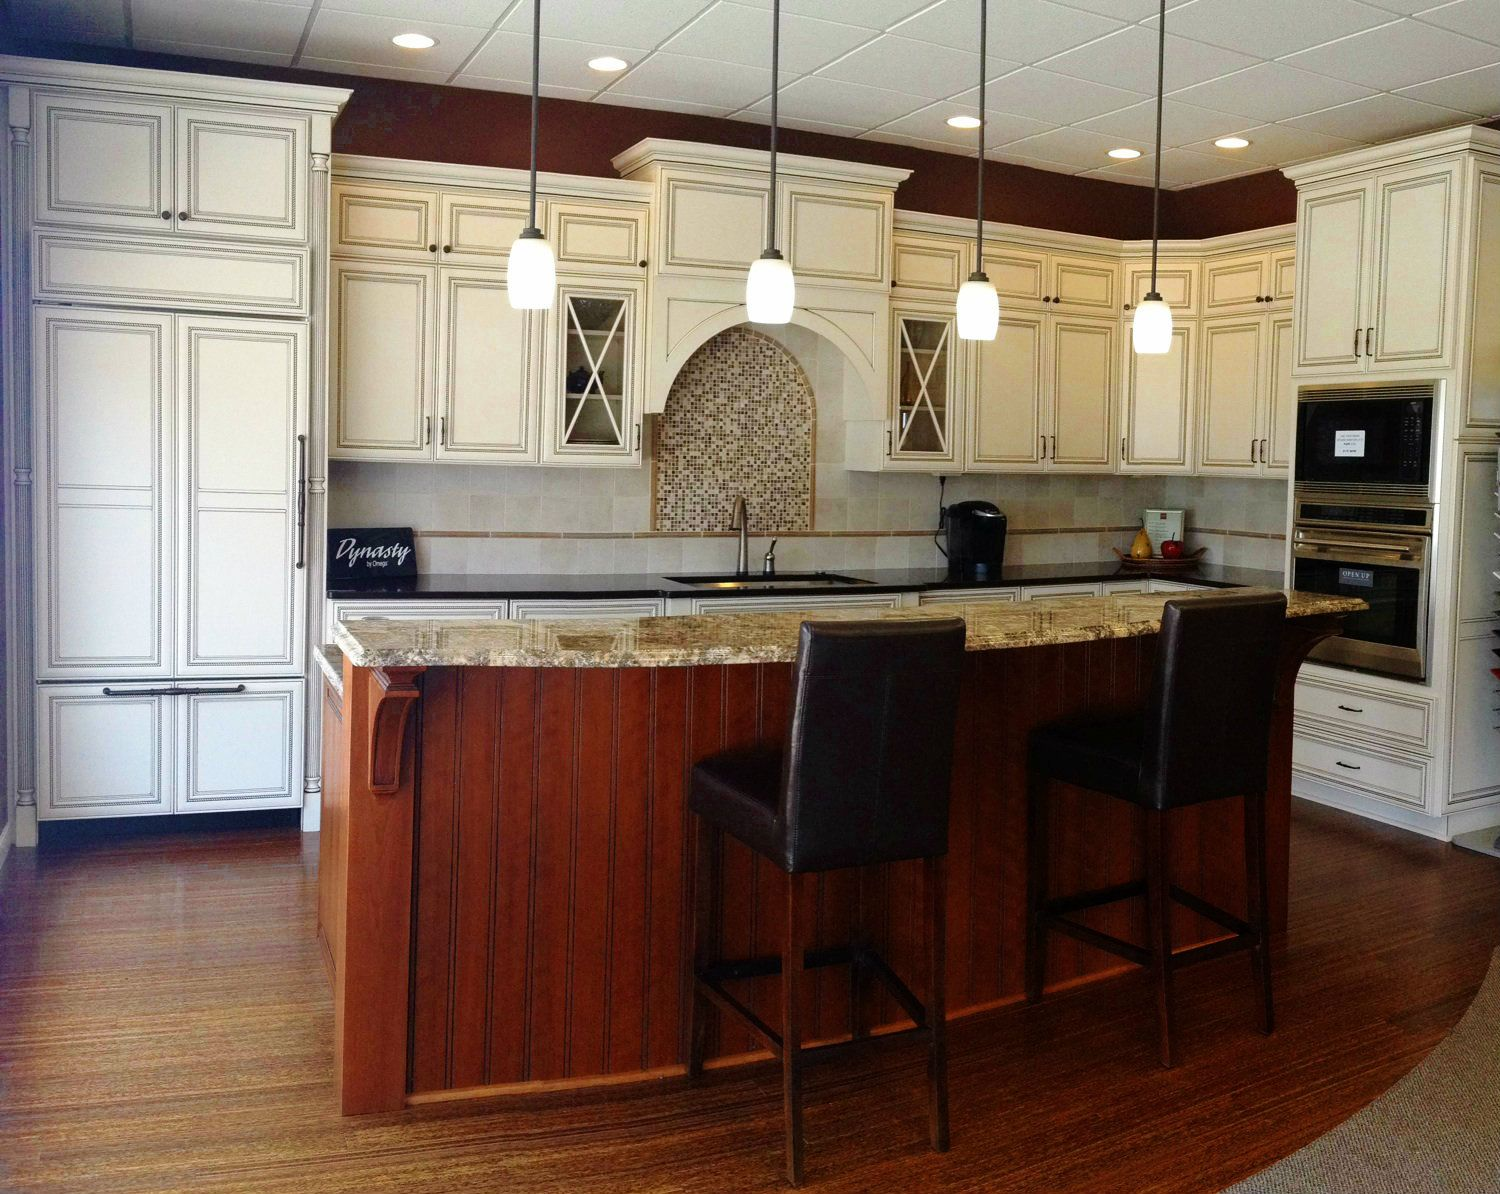 Omega Dynasty Kitchen Cabinets 17 Best Images About Dynasty Cabinets On Pinterest Shaker